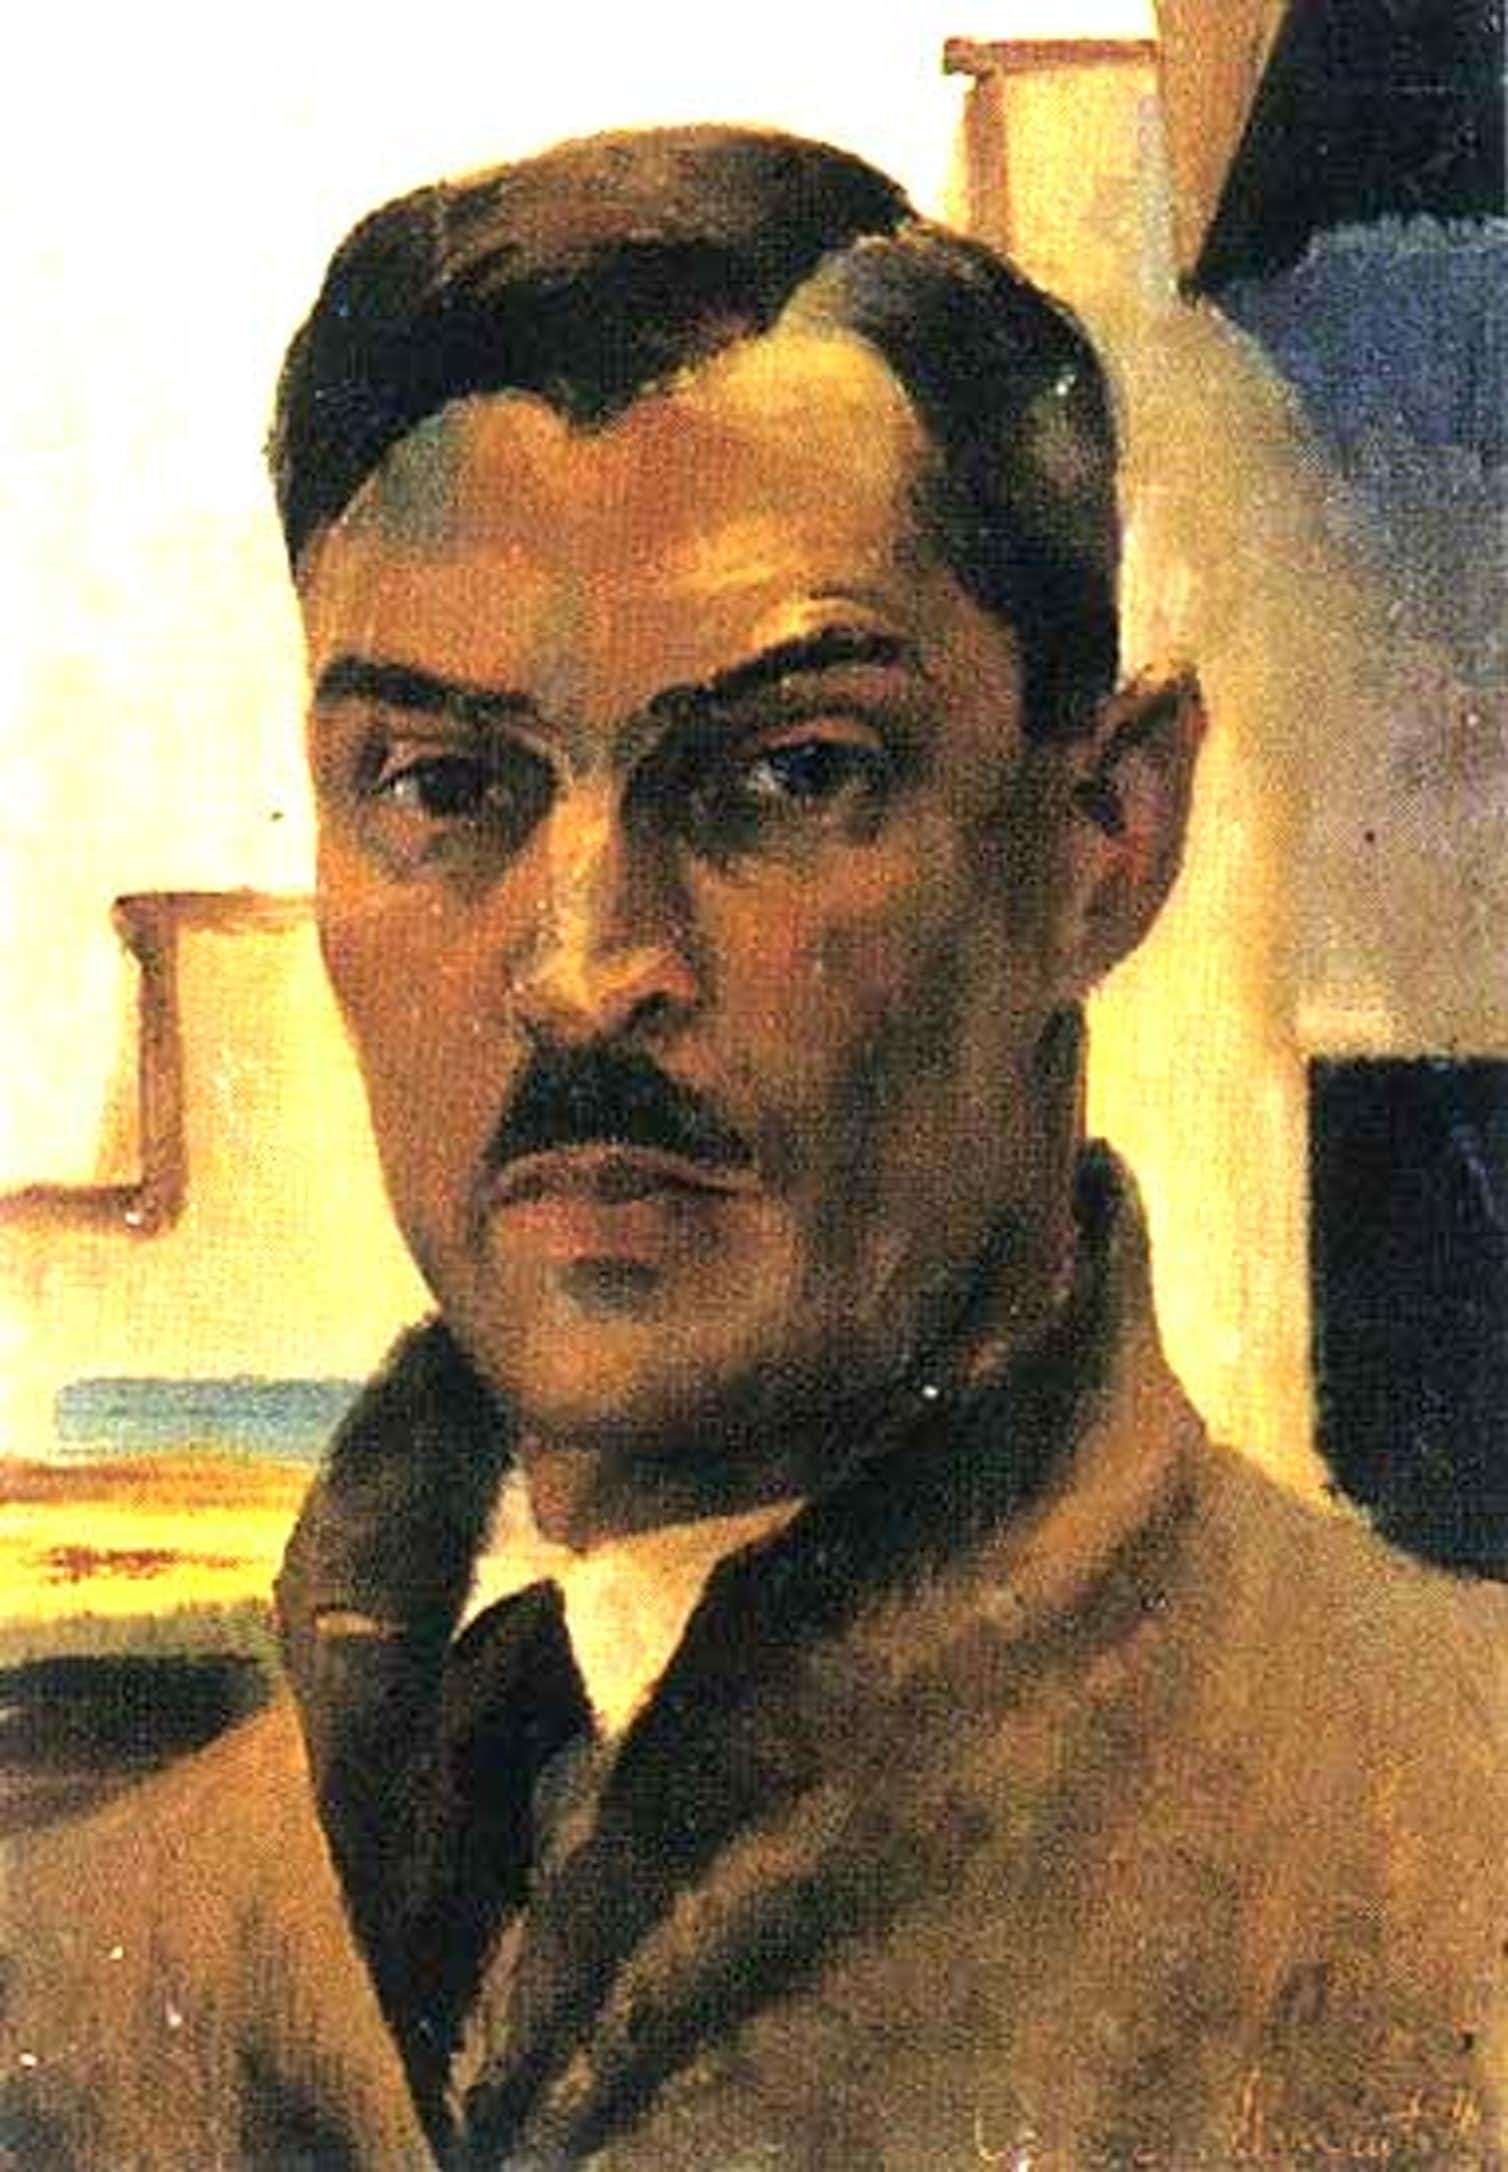 A 1941 self-portrait of painter Victor Arnautoff. Credit: Wikimedia Commons